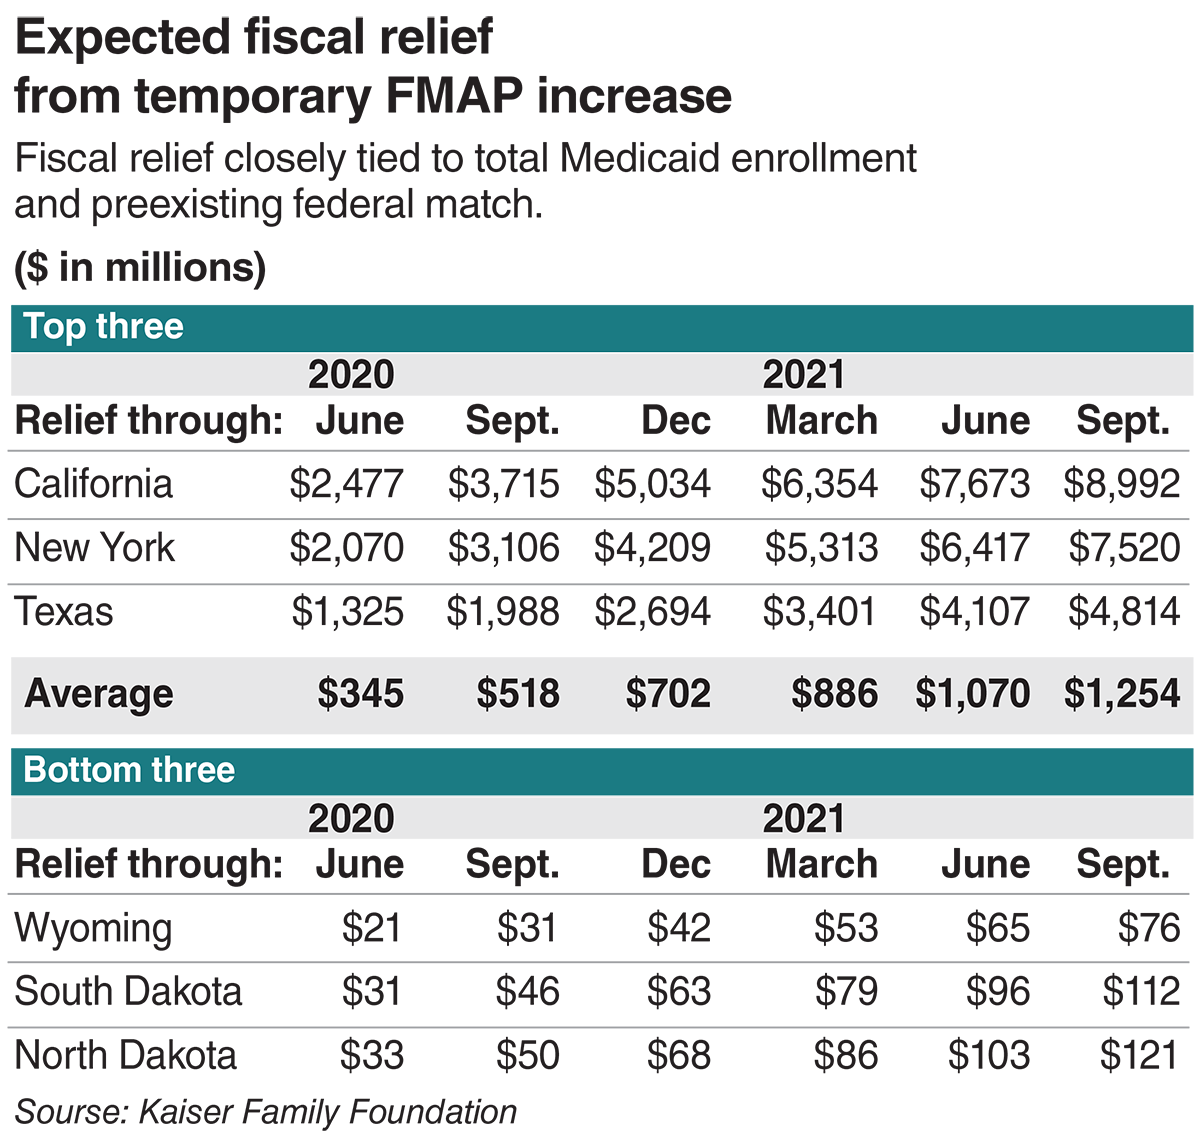 Expected fiscal relief from temporary FMAP increase